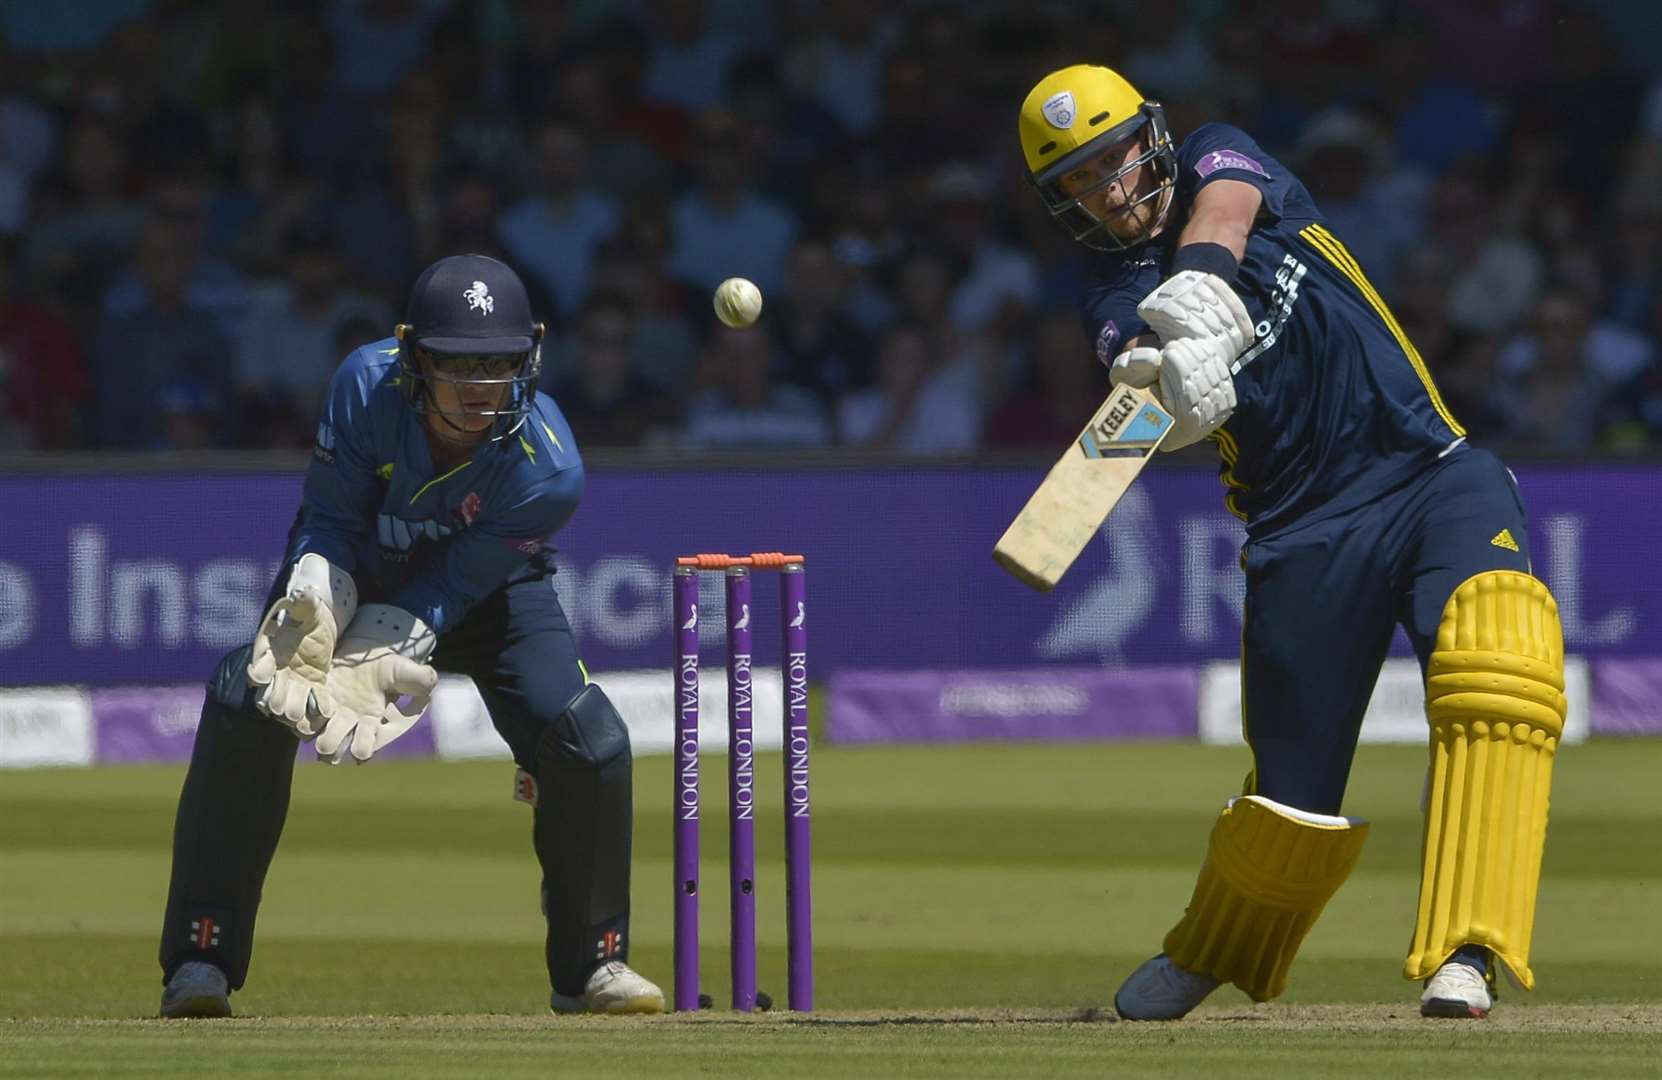 Hampshire's Sam Northeast hits out during his innings of 75 not out Picture Ady Kerry